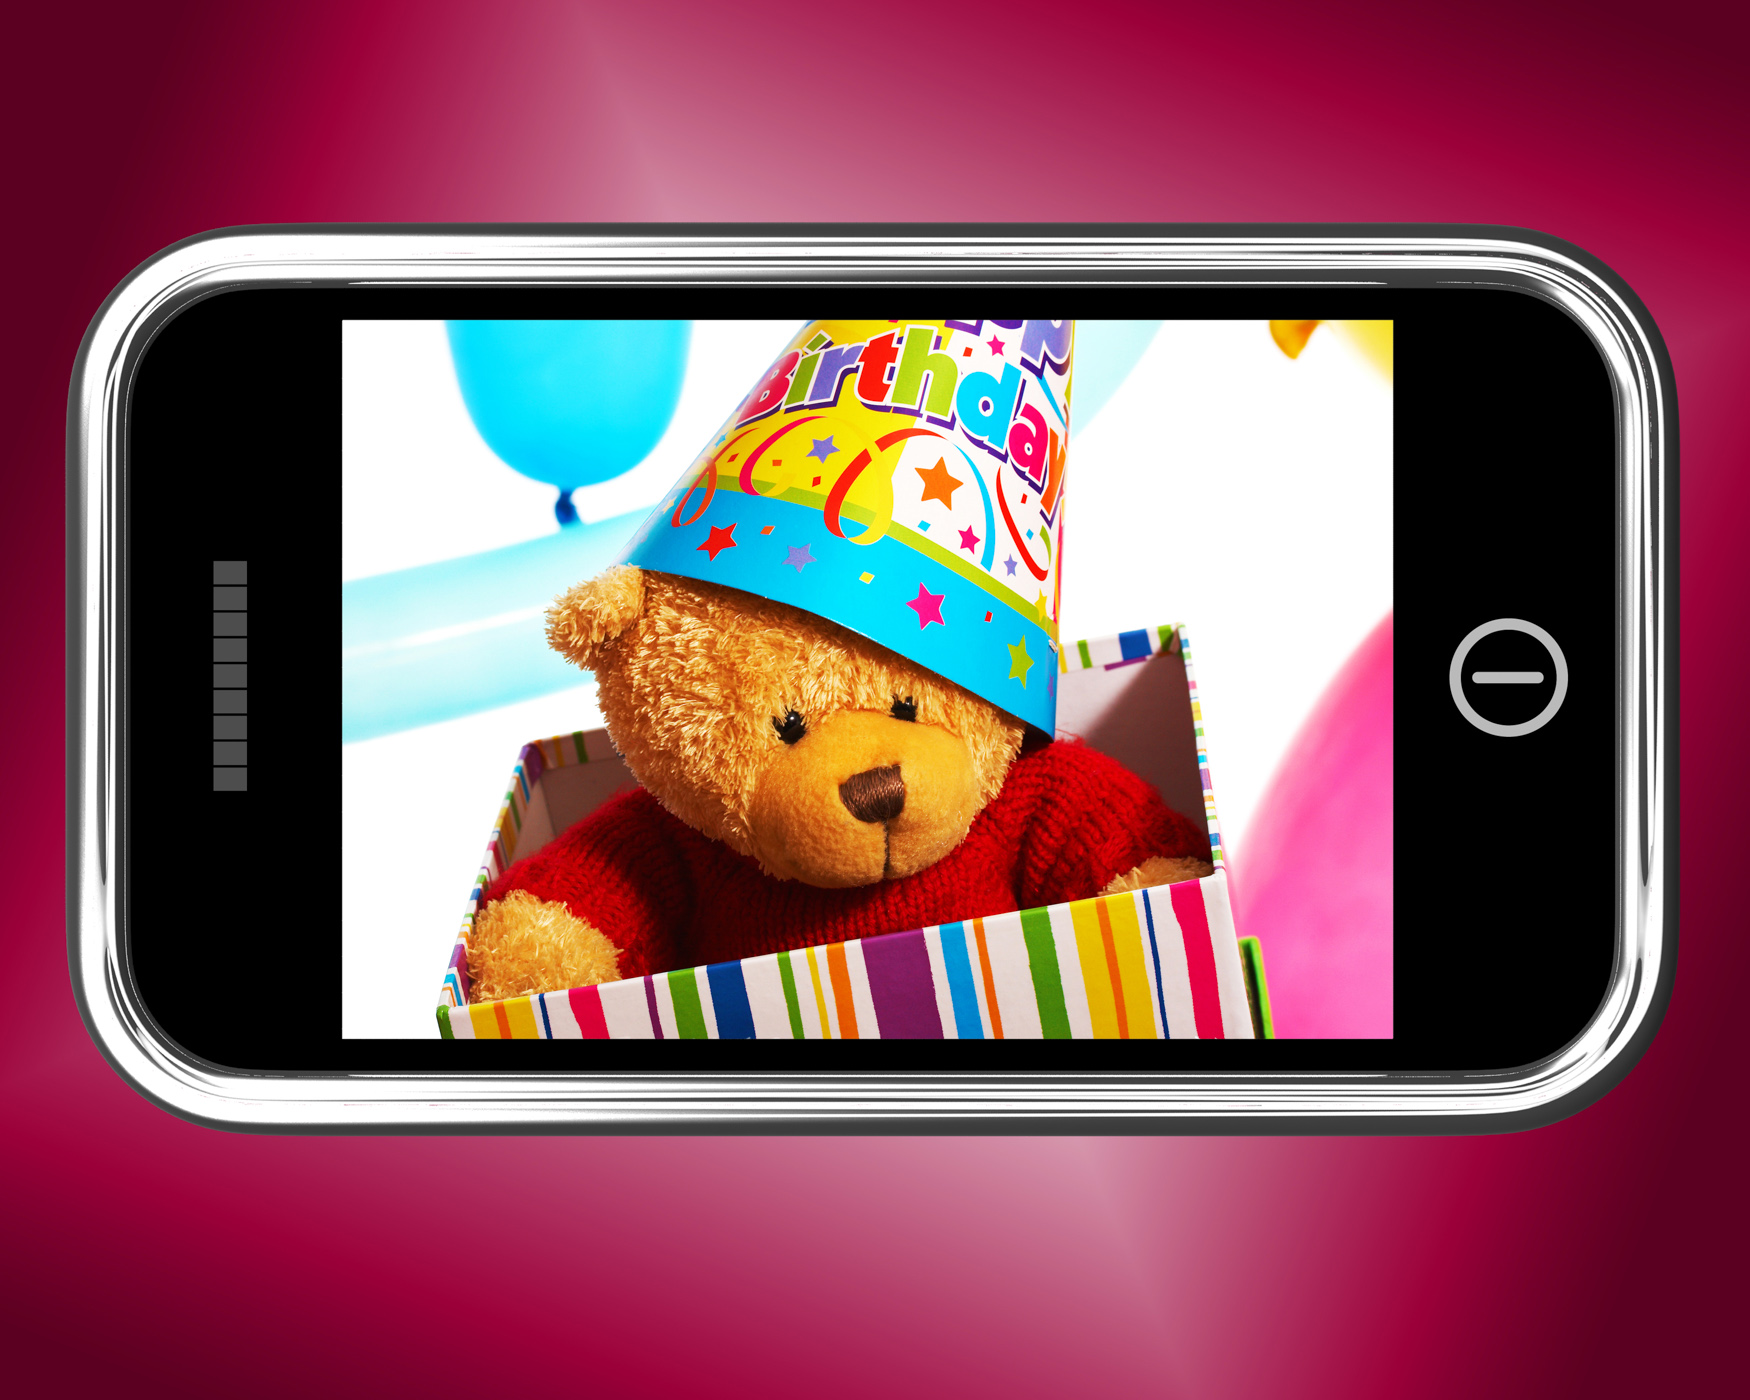 Teddy bear birthday gift photo on smartphone